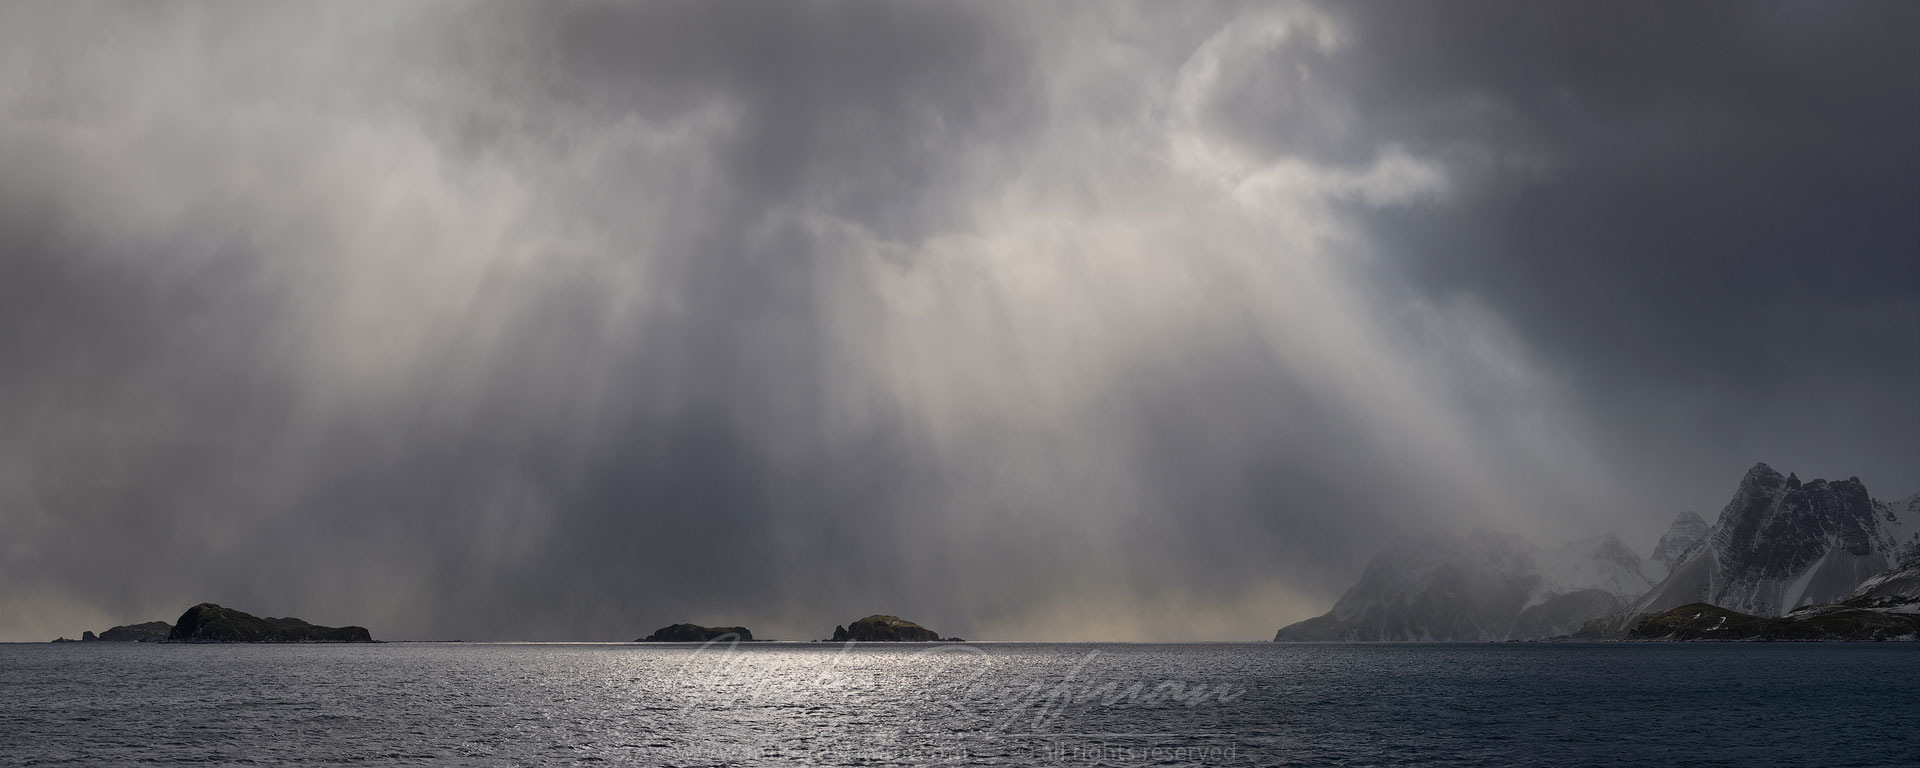 Dramatic light over small islands. South Georgia, Sub Antarctic. - Albatrosses-Petrels-Landscapes-South-Georgia-Sub-Antarctic - Mike Reyfman Photography